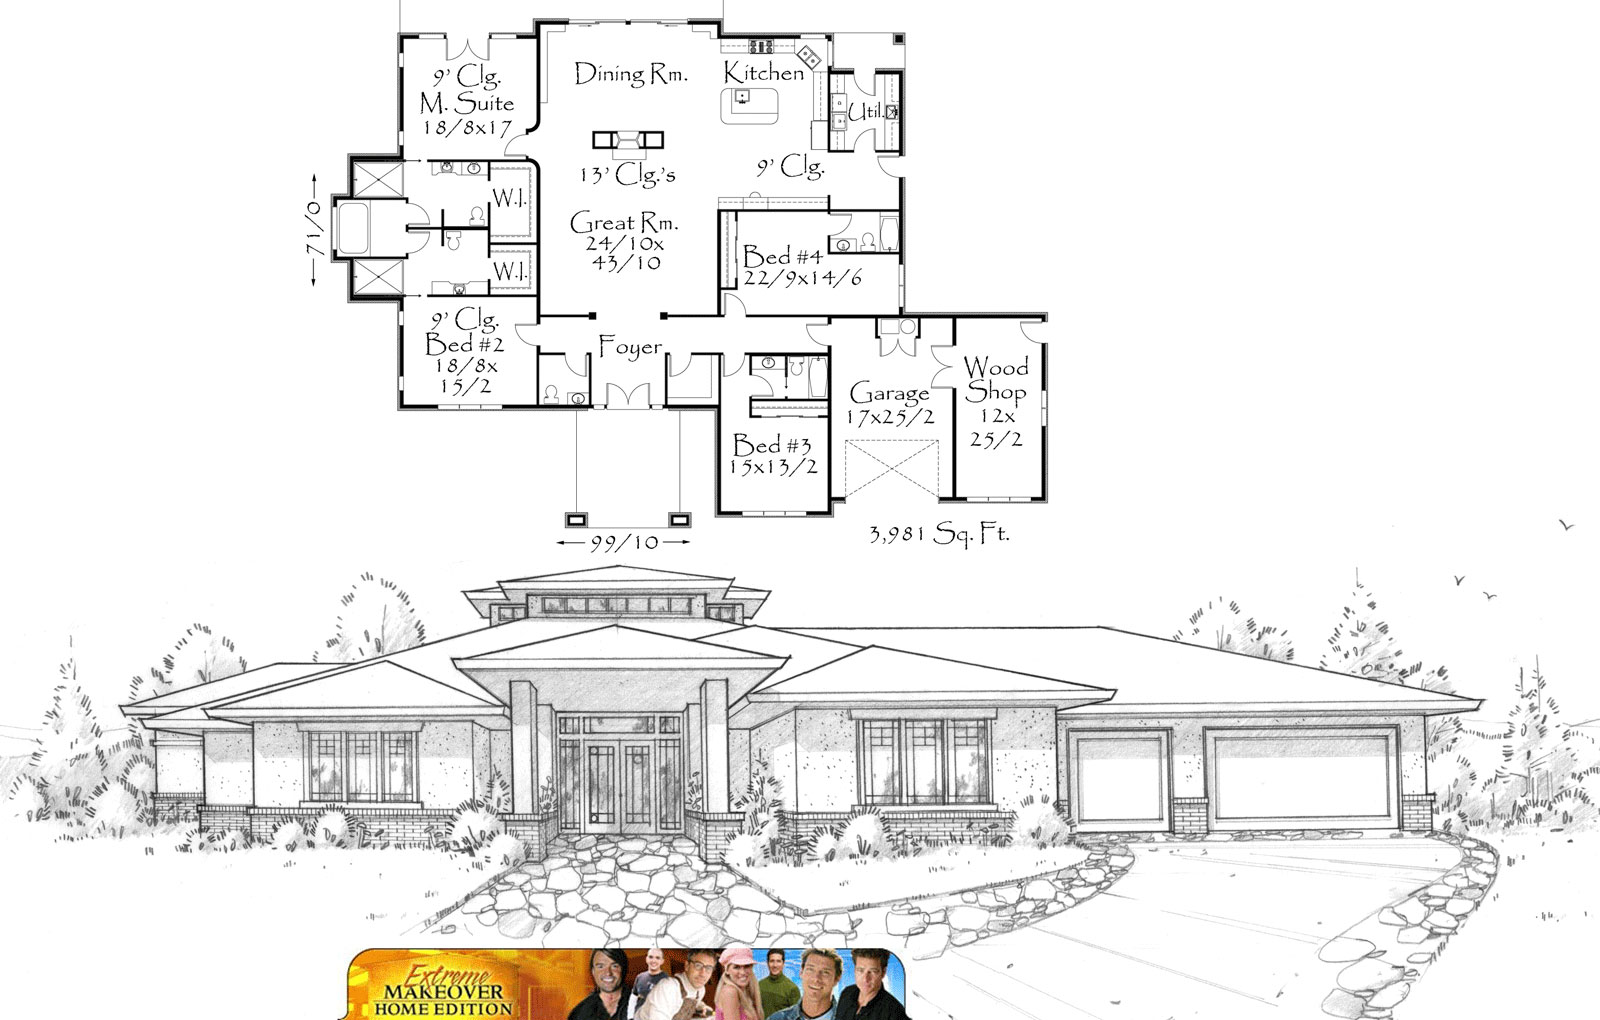 Mark stewart home design designs first custom home for abc for Extreme makeover home edition house plans